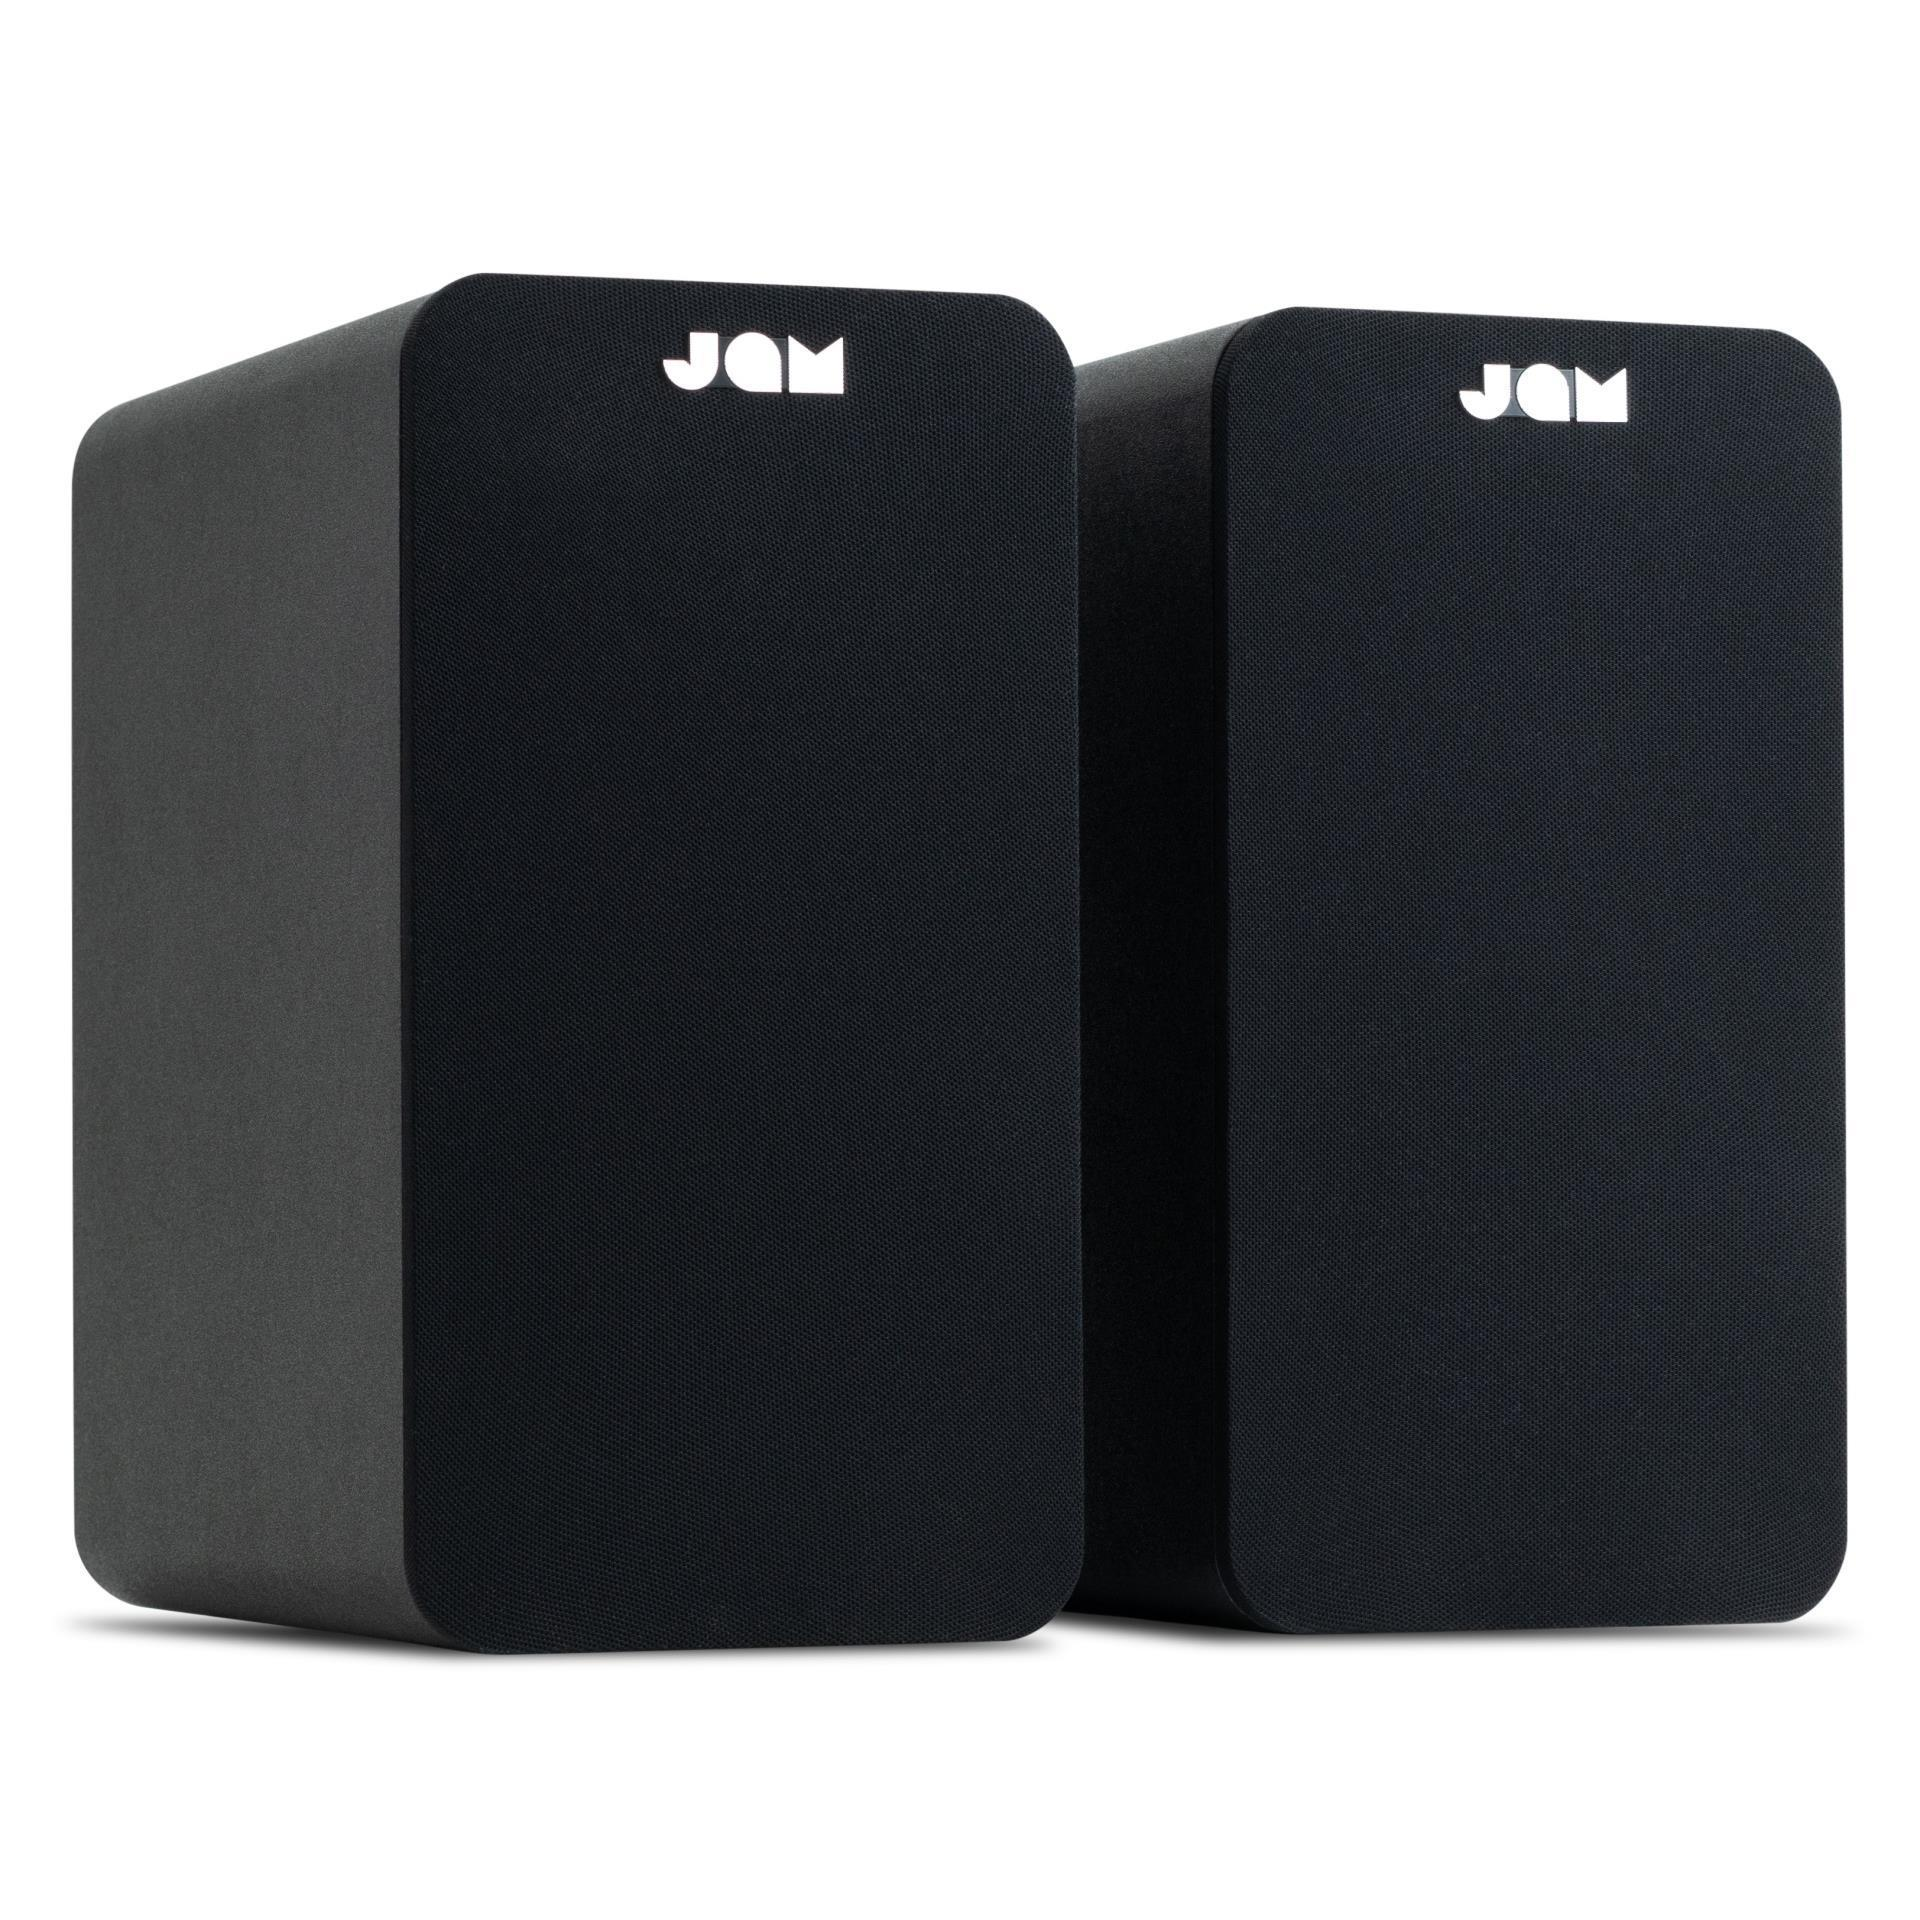 Jam Bookshelf Bluetooth Speakers (Black)